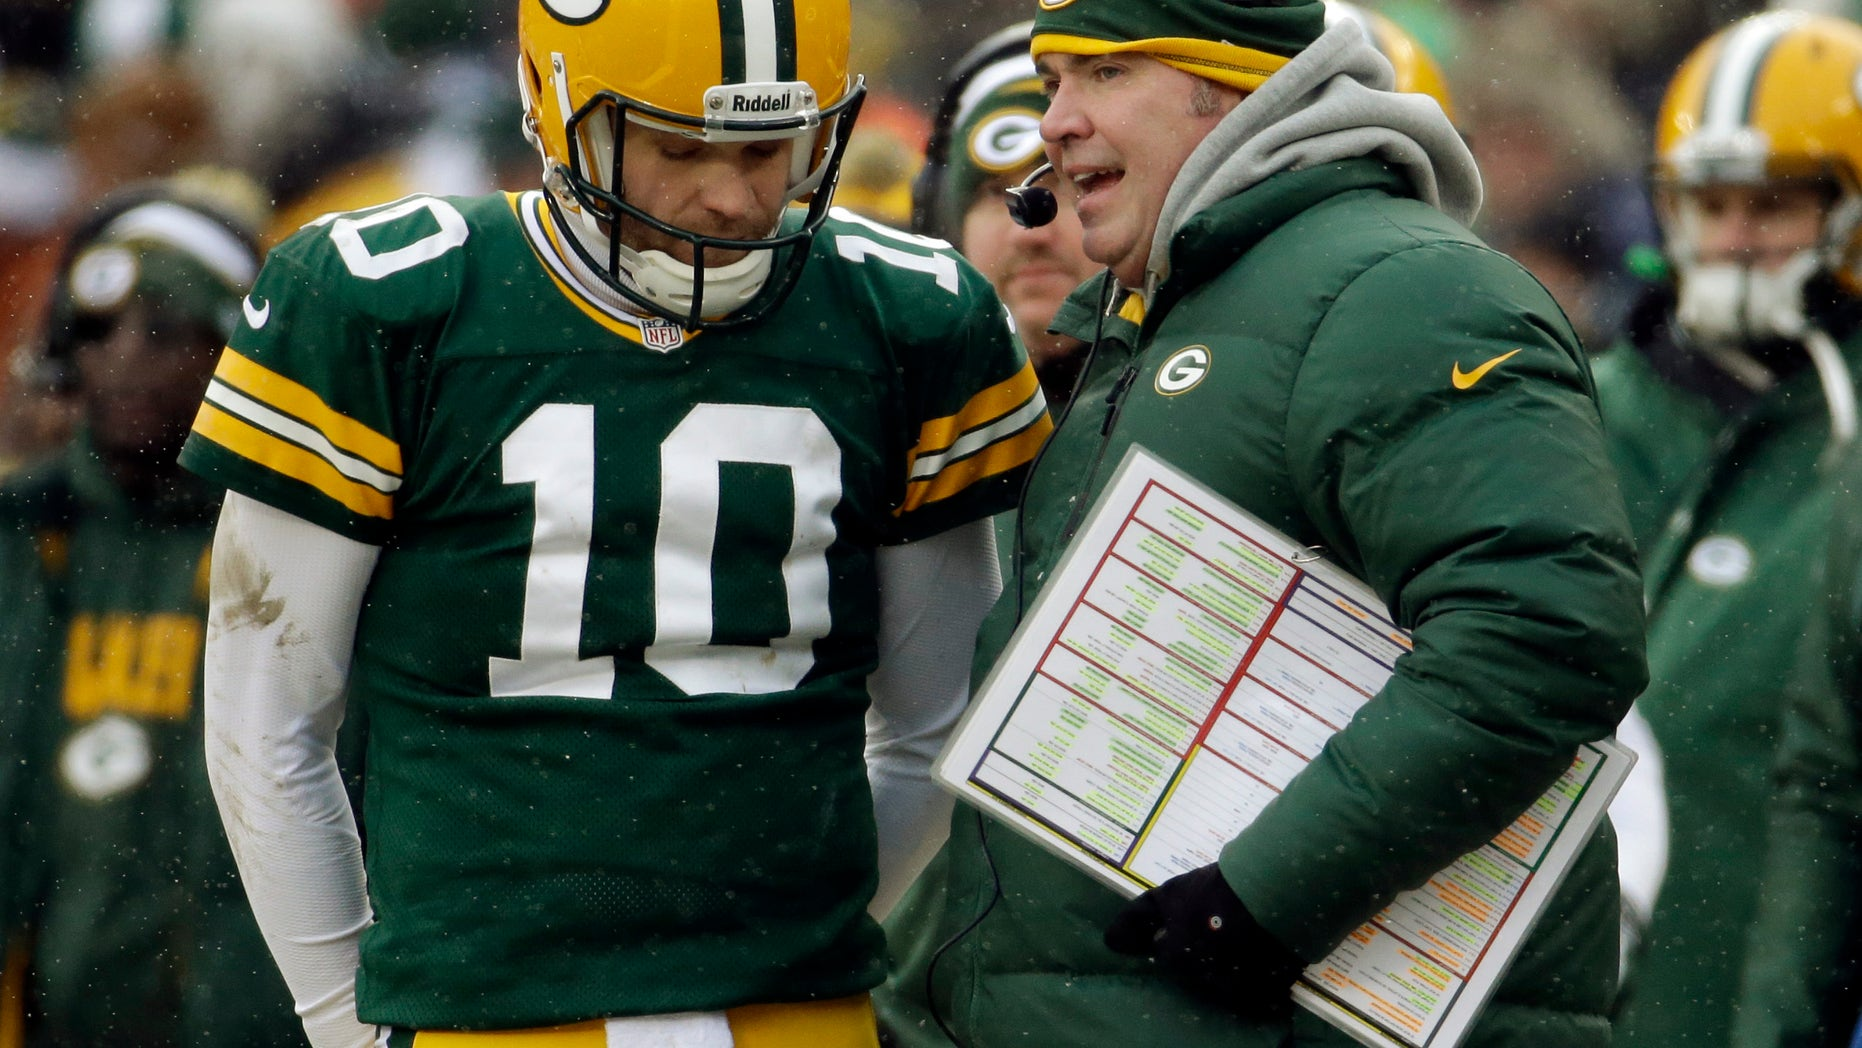 Green Bay Packers head coach Mike McCarthy talks to Matt Flynn (10) during the first half of an NFL football game against the Atlanta Falcons Sunday, Dec. 8, 2013, in Green Bay, Wis. (AP Photo/Mike Roemer)